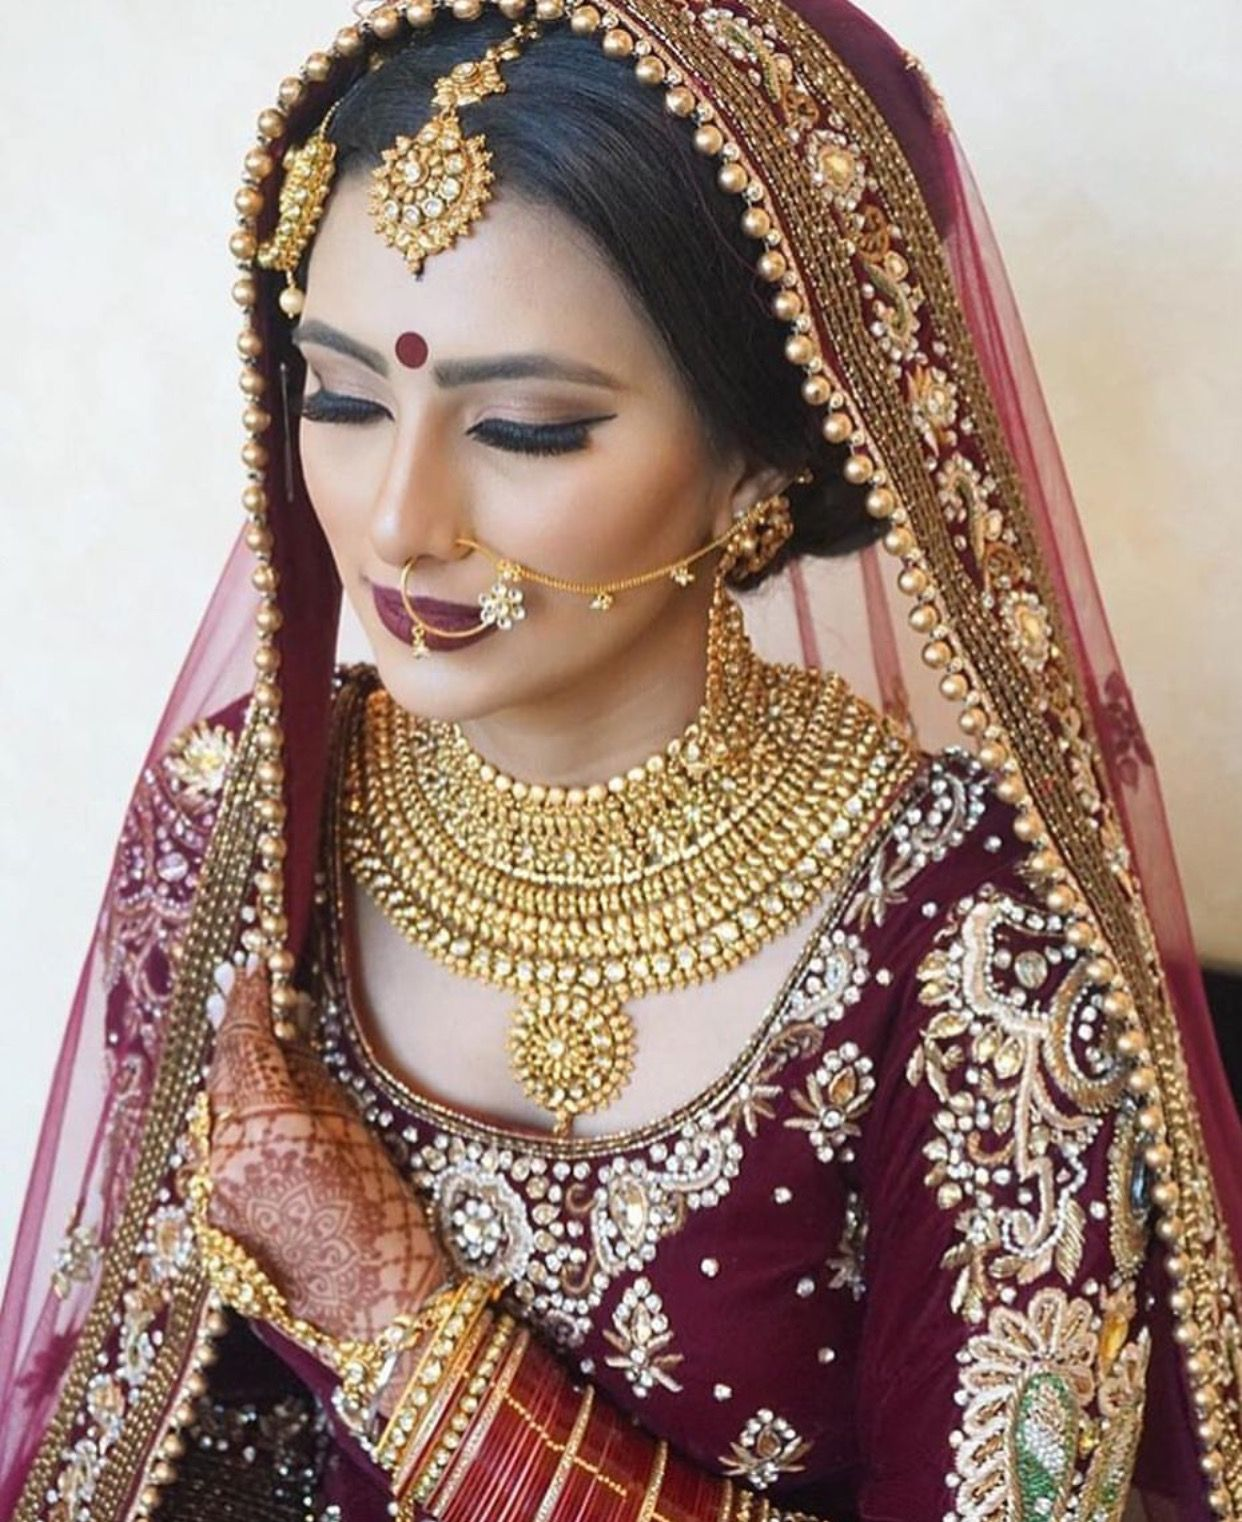 Bridal Jewelry Indian Wedding: ZARAH******* Visit Us At Https://www.facebook.com